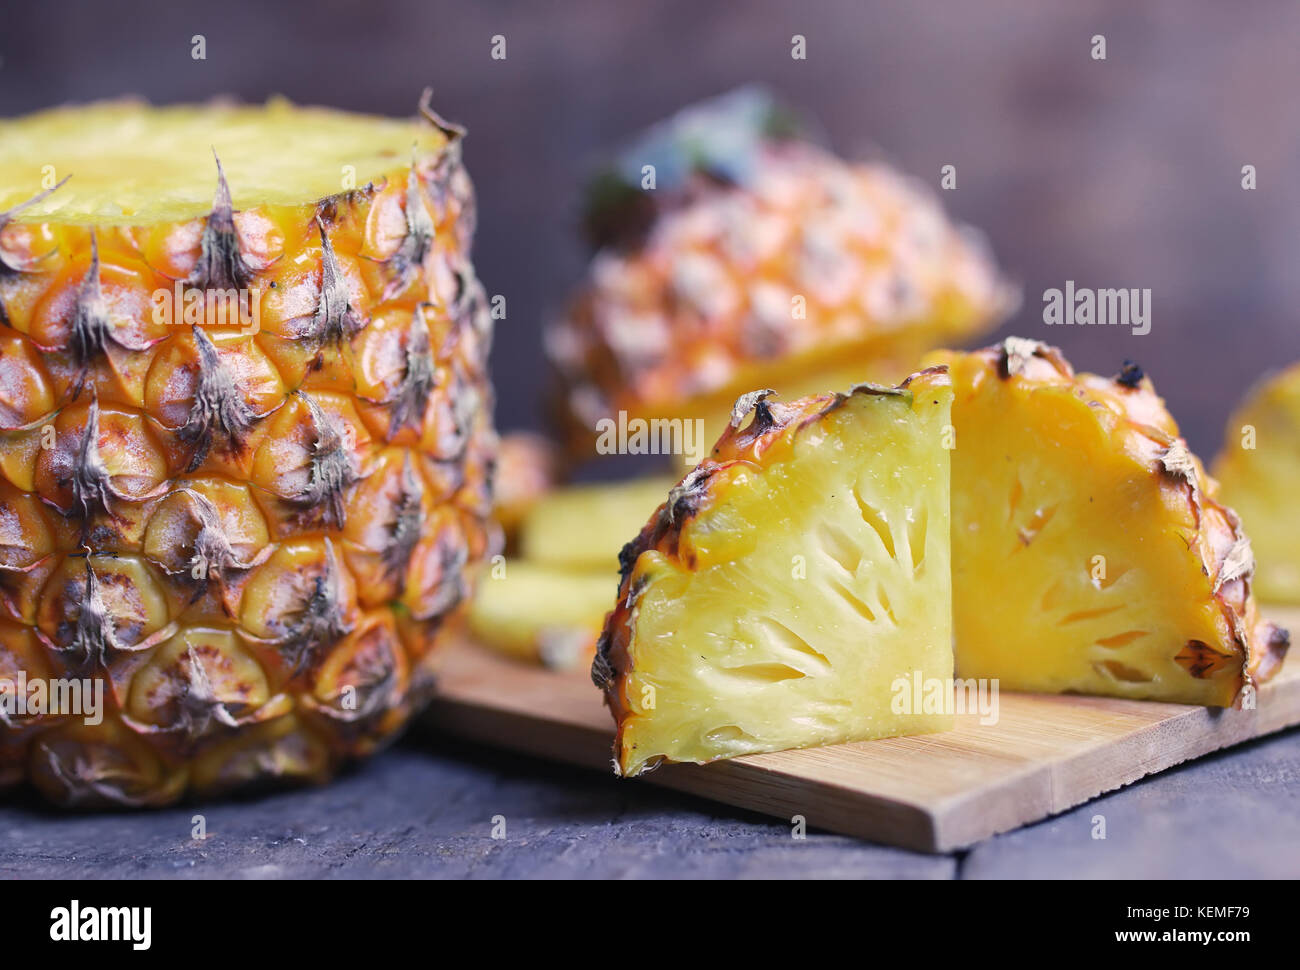 Fresh fragrant and juicy fruits on the wooden background image of a healthy diet - Stock Image